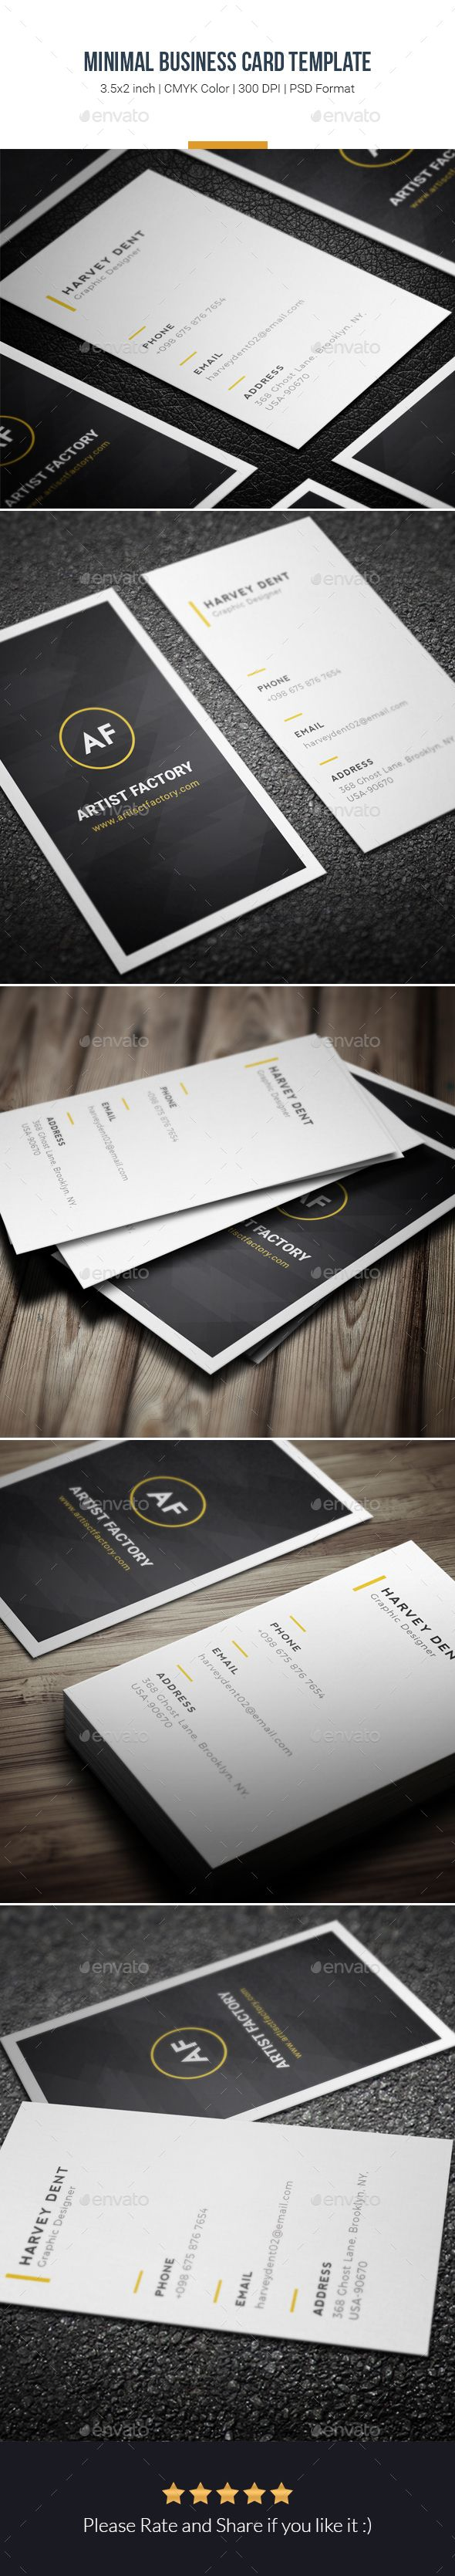 356 best design business cards images on pinterest